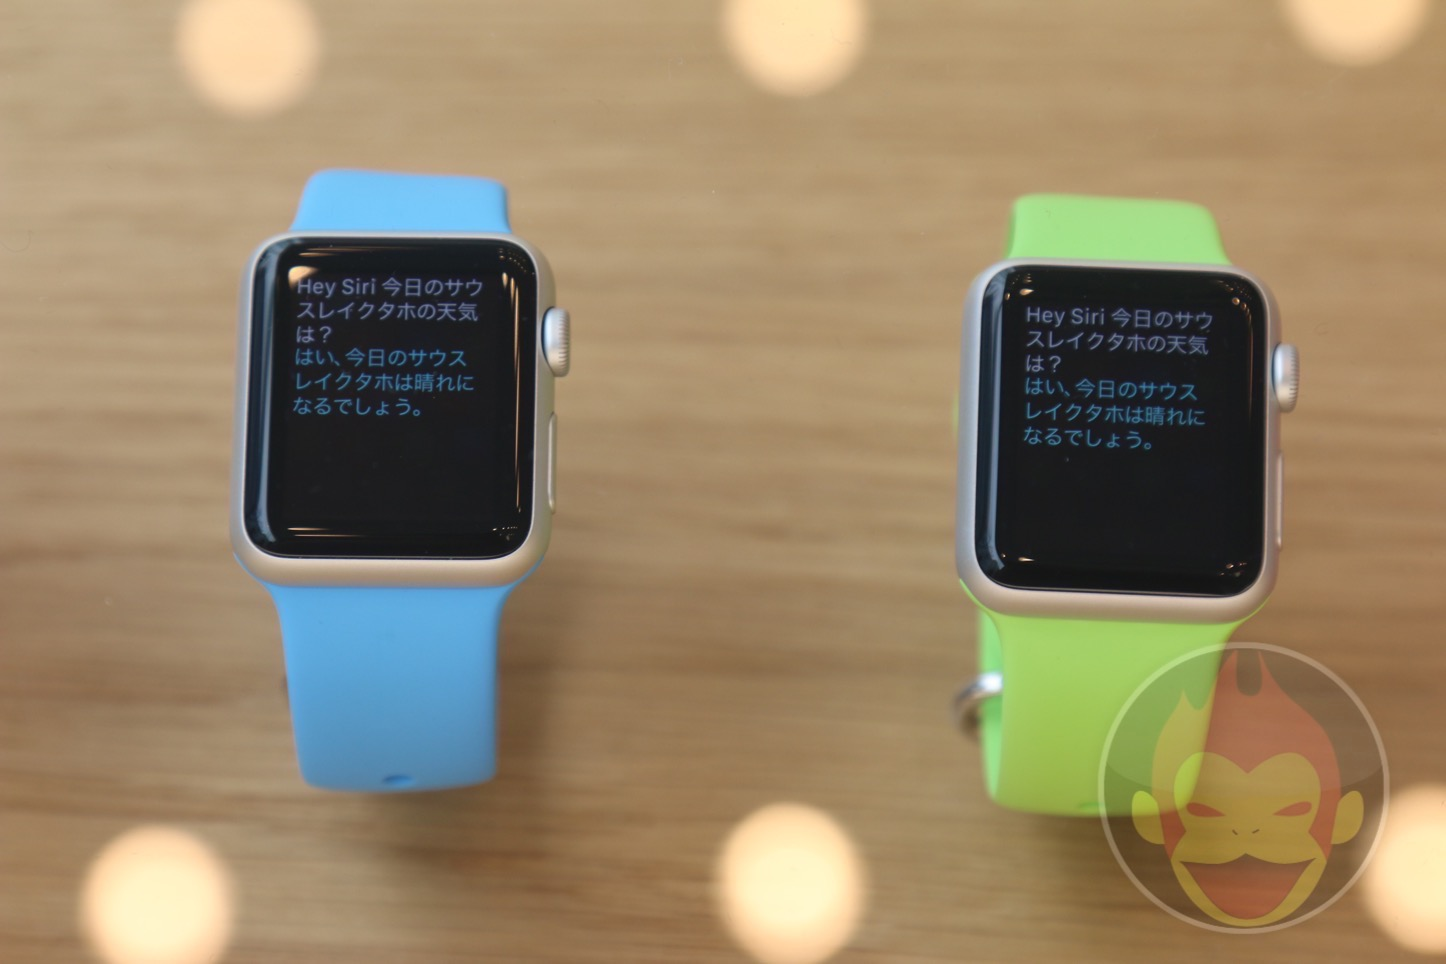 Apple-Watch-Omotesando-21.JPG